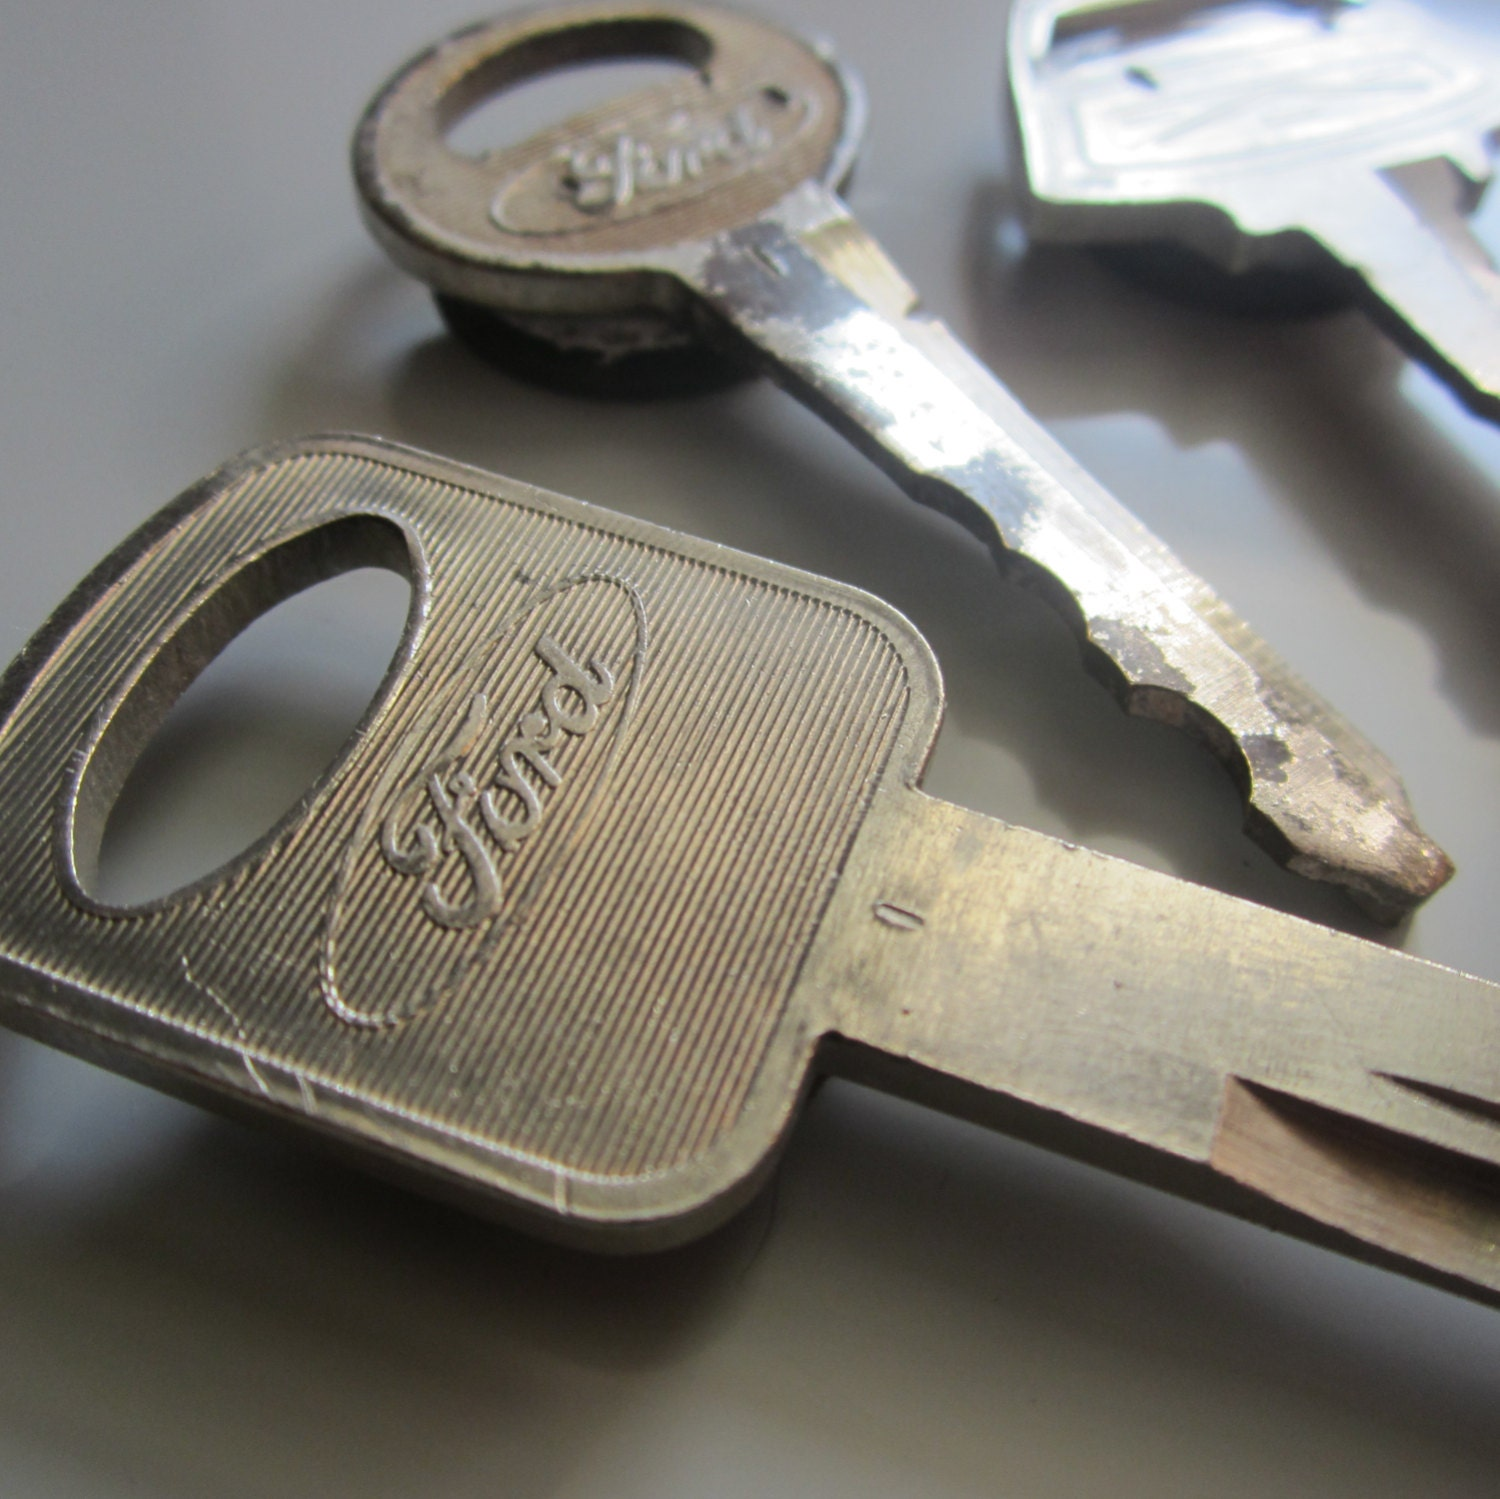 FORD Key Magnets - 8milecreekdesigns